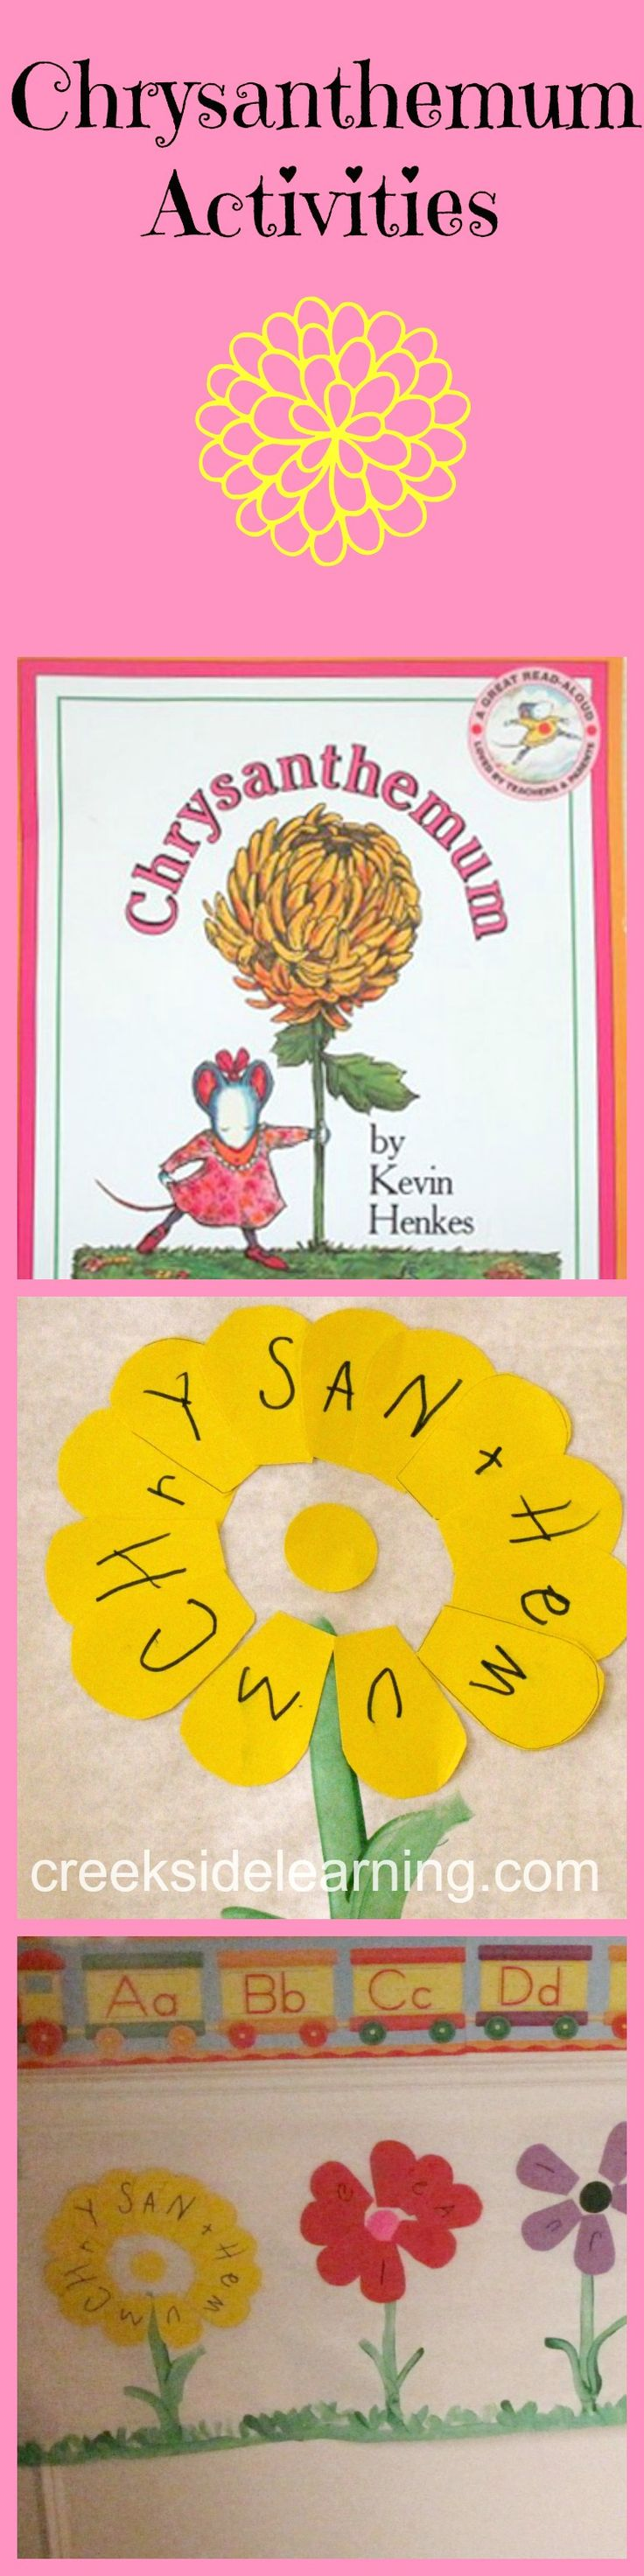 Activities to go with the book Chrysanthemum by Kevin Henkes. Teaching children to appreciate differences and celebrate uniqueness. #ece #teacherresources #planning